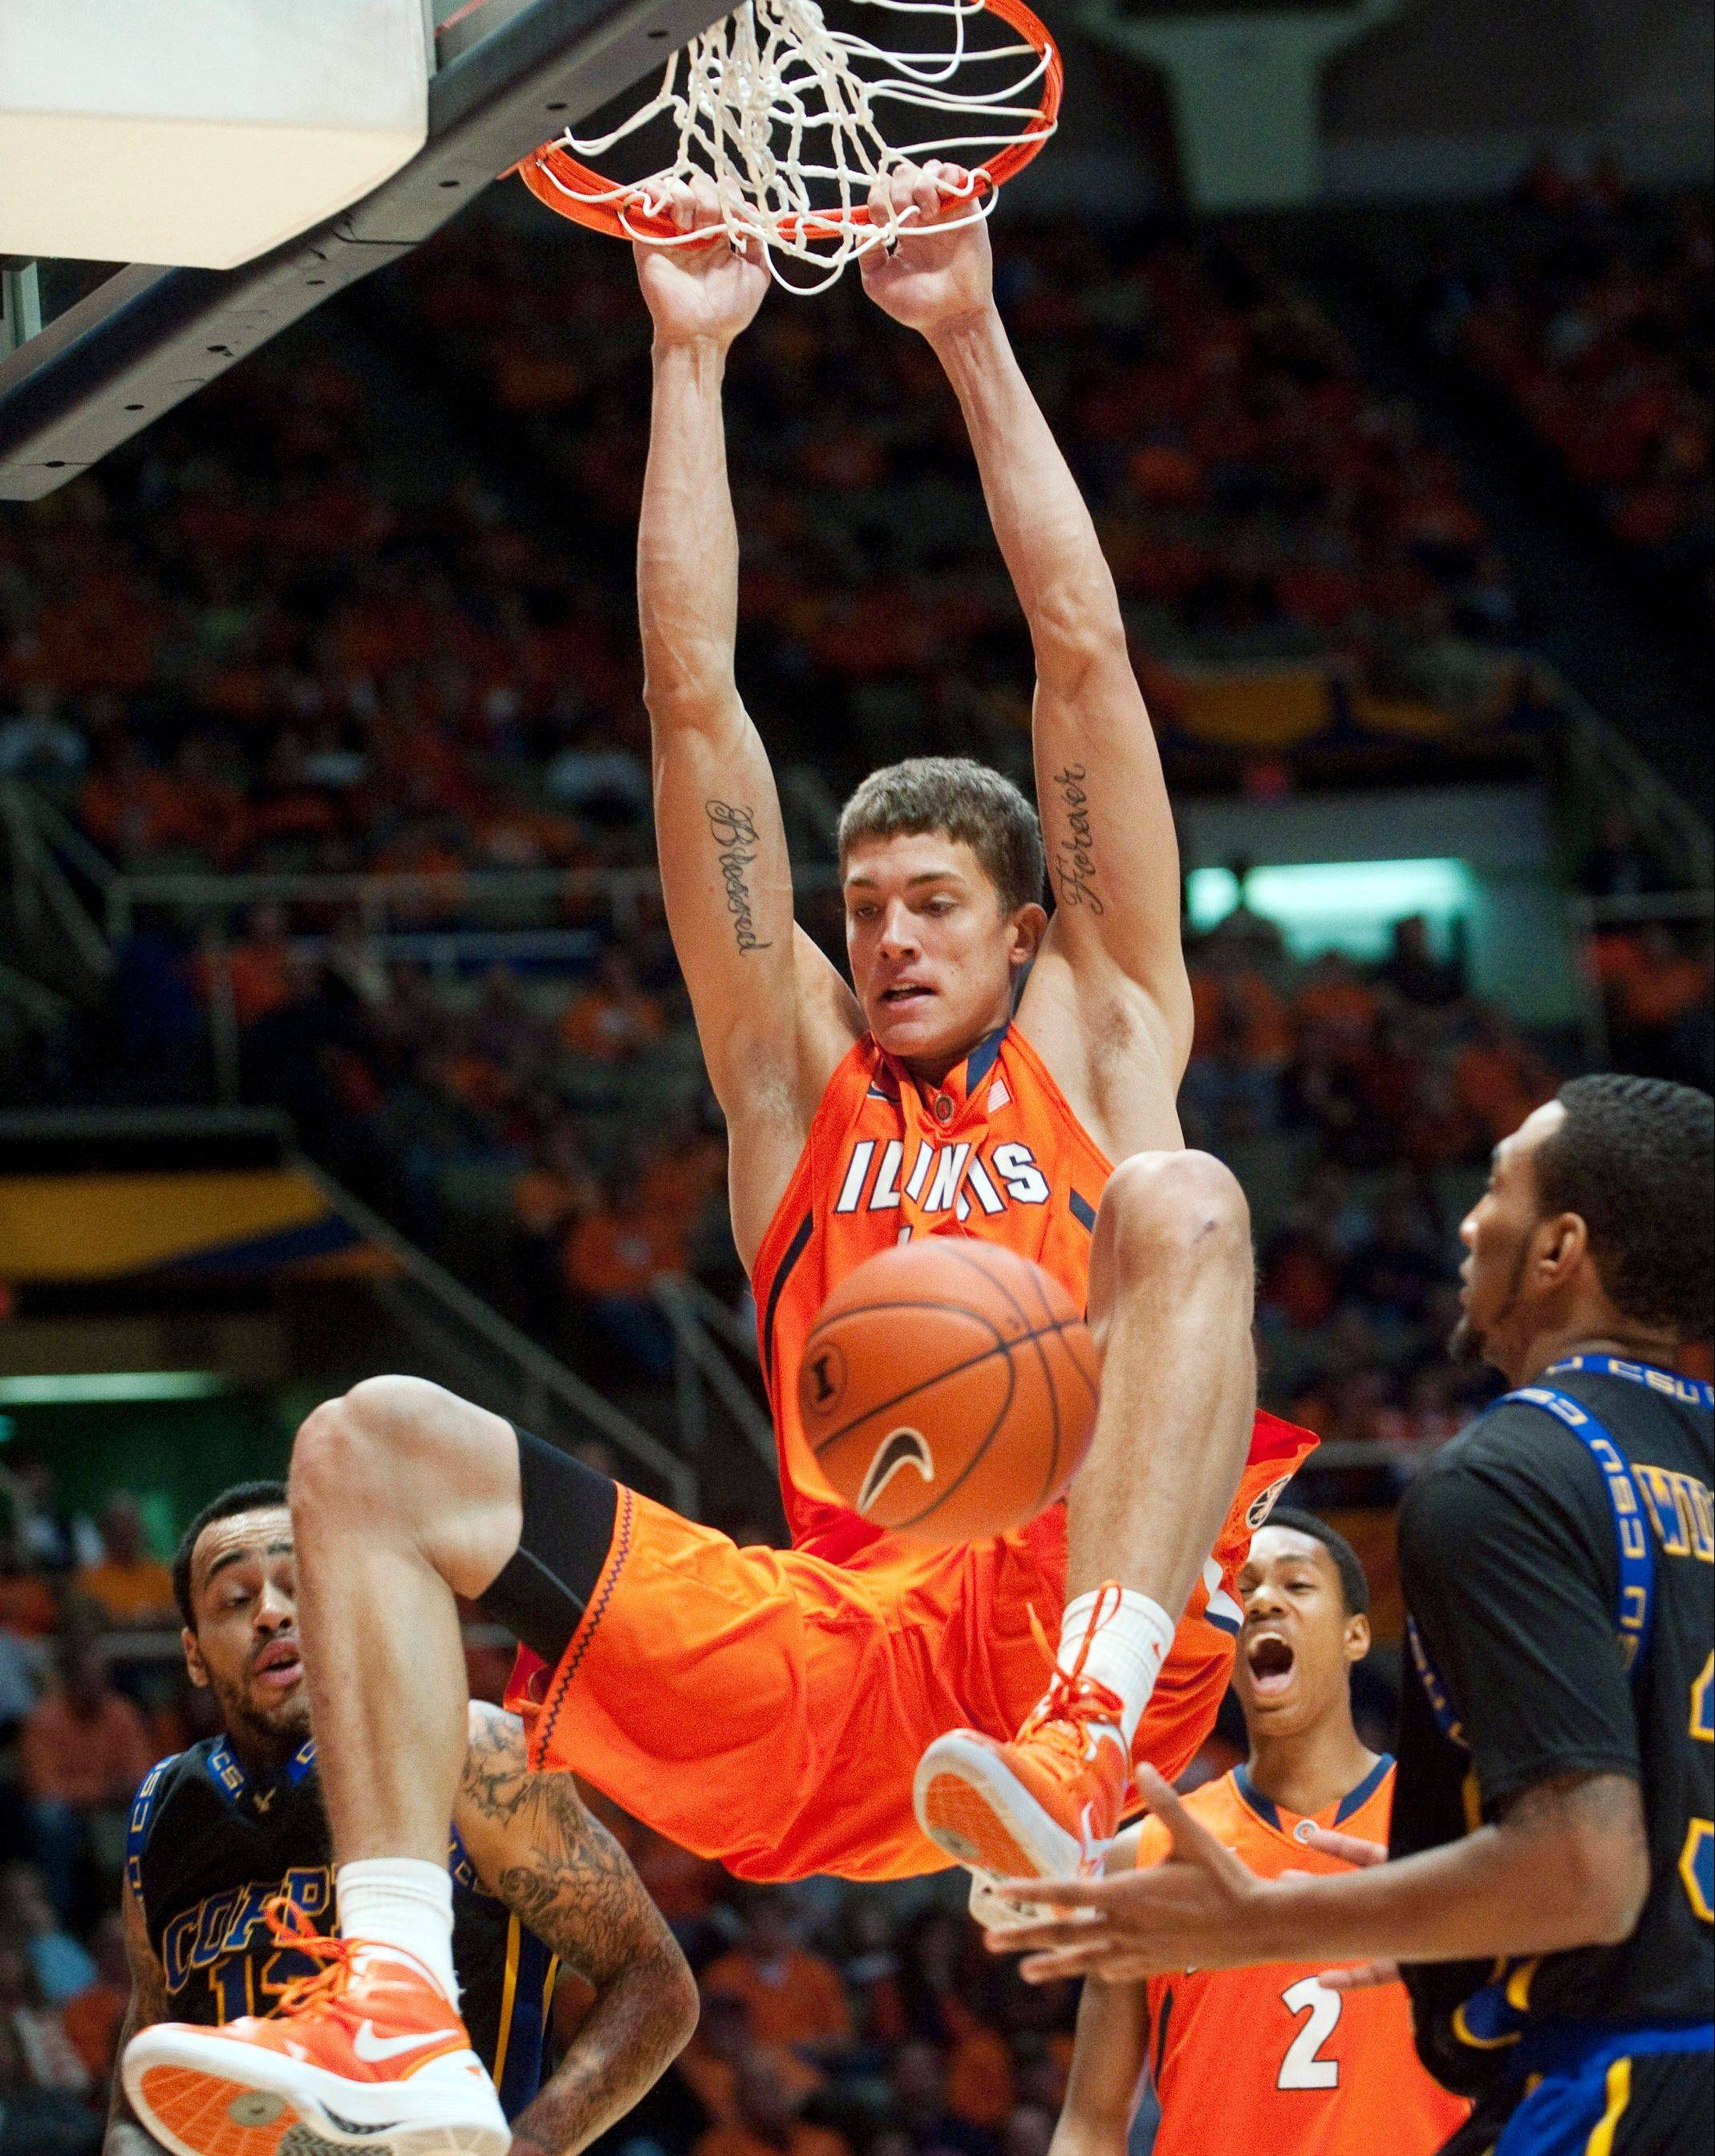 Illinois sophomore center Meyers Leonard is projected to go anywhere from No. 12 to 25 in the June 28 NBA draft. He plans to use some of his professional earnings to pay for medical treatment for his mother.